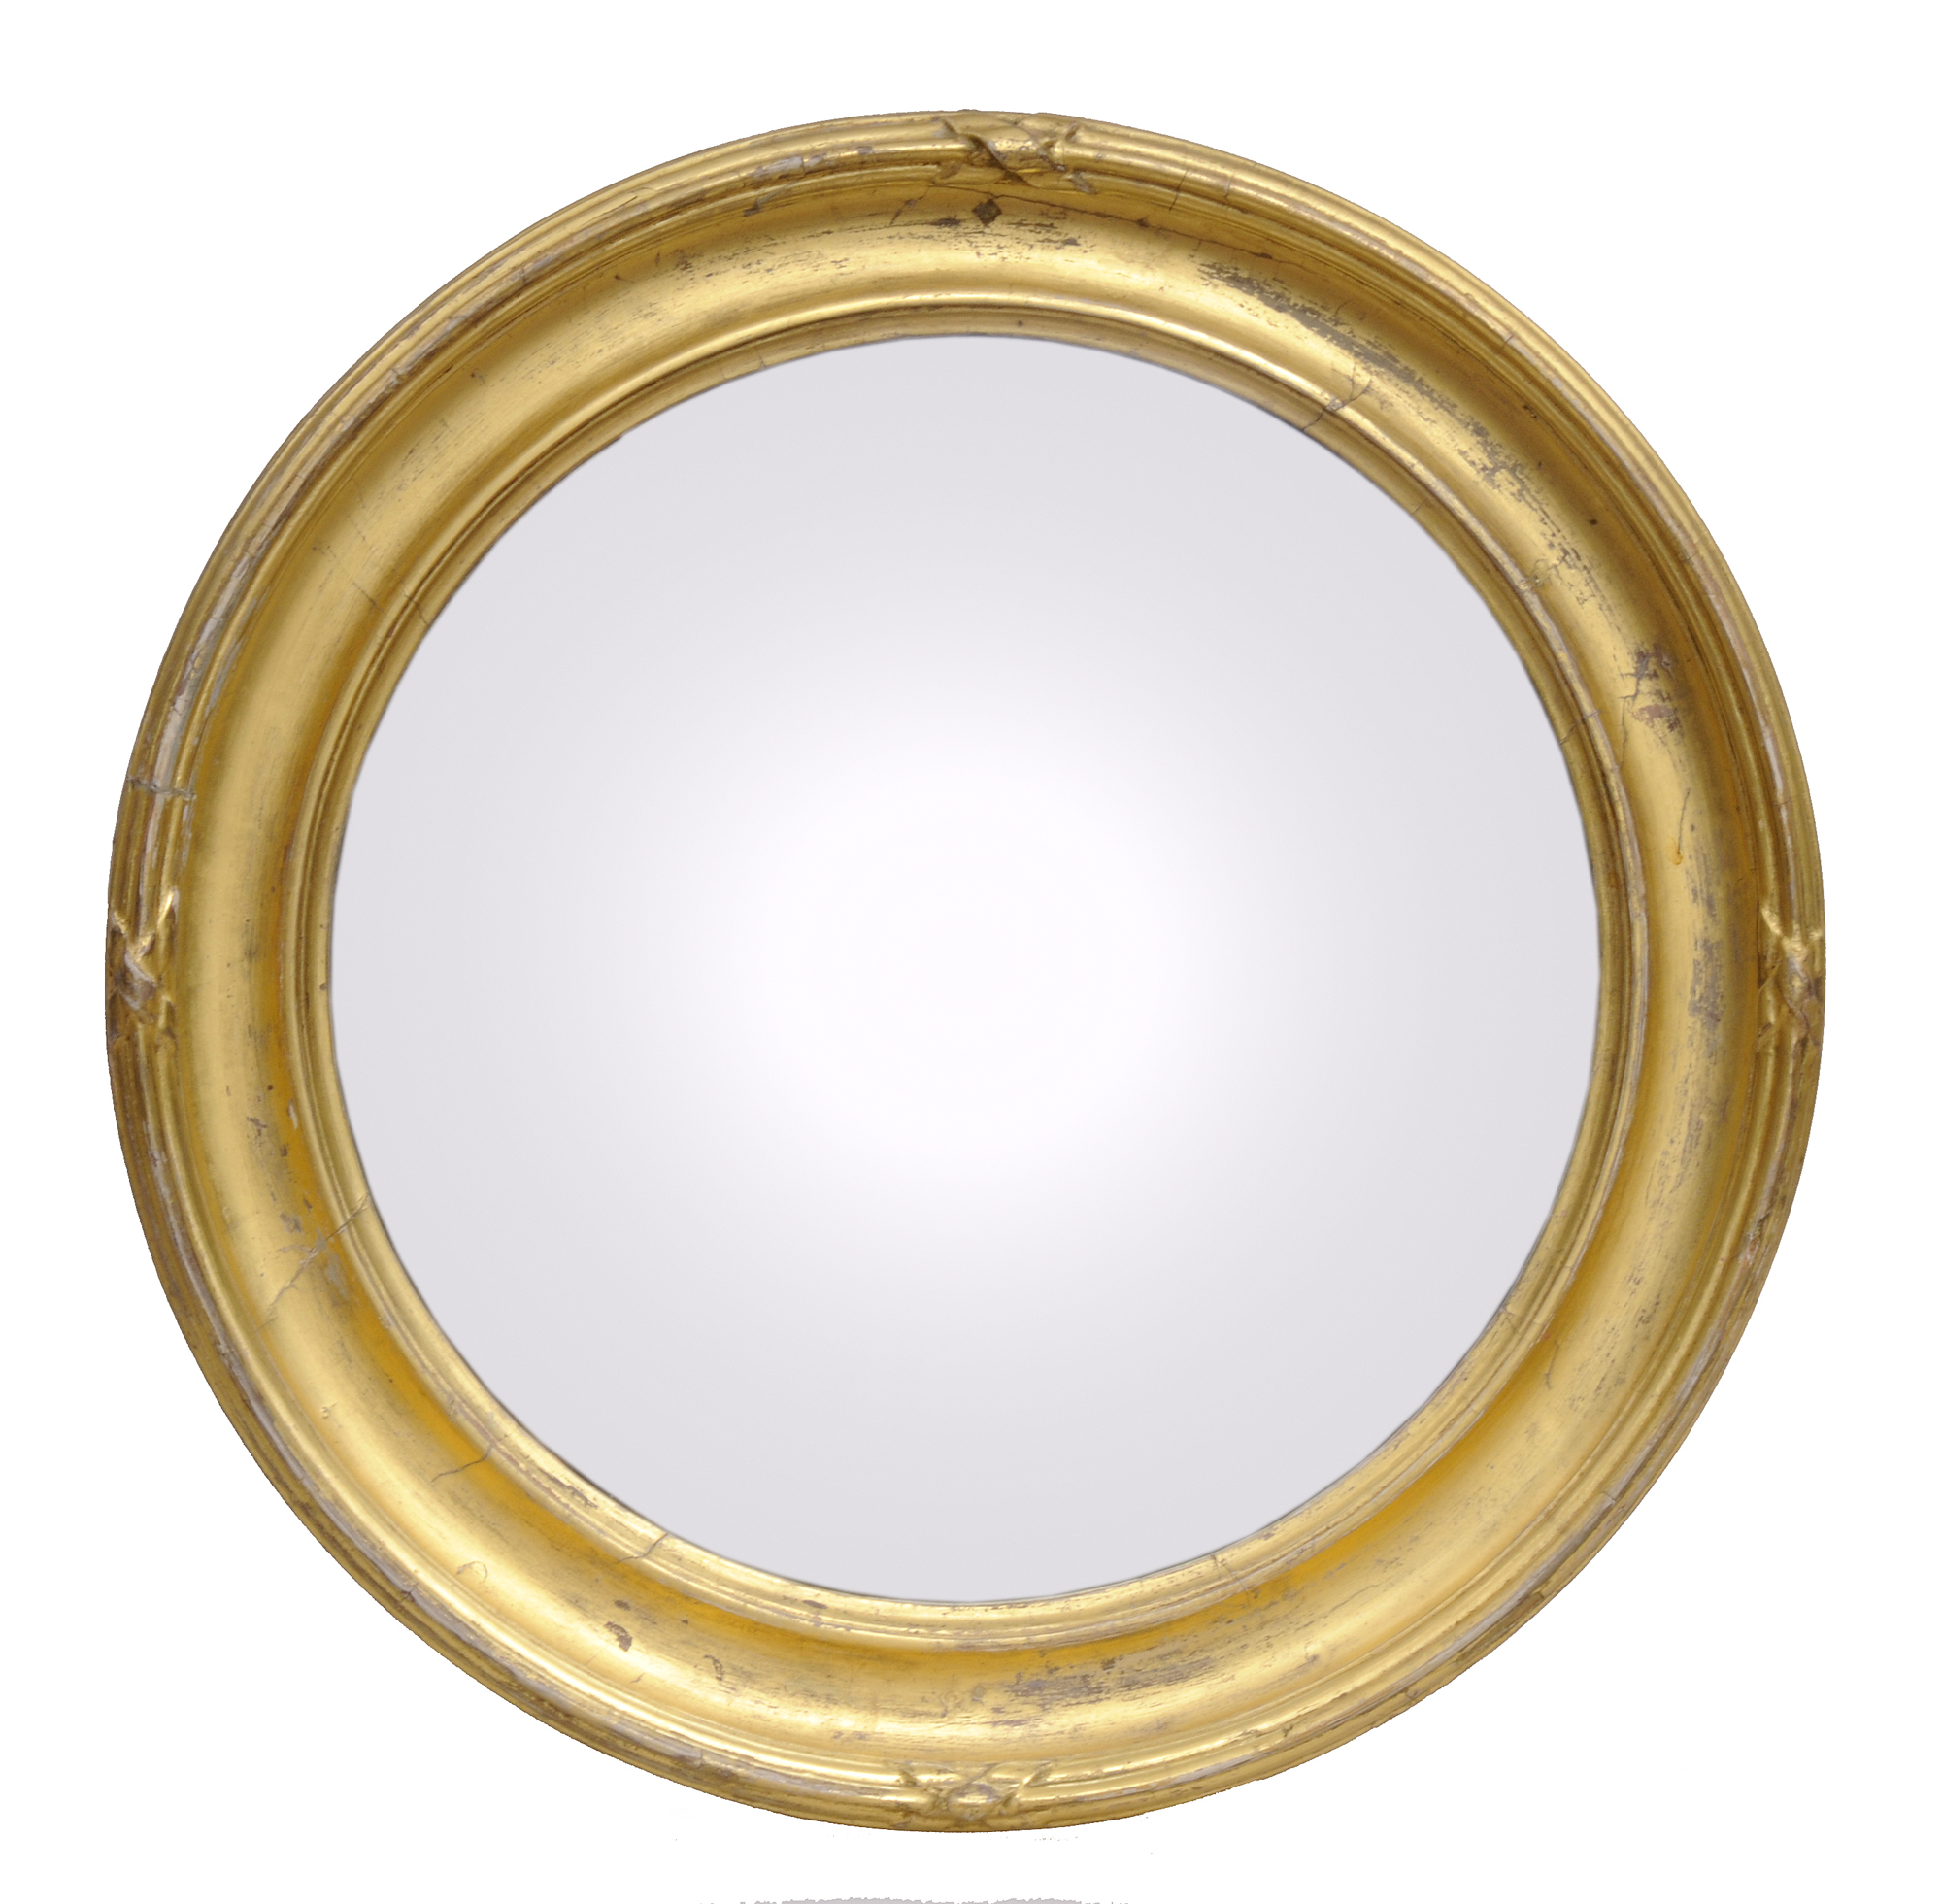 Antique giltwood convex mirror with concave frame for Convex mirror